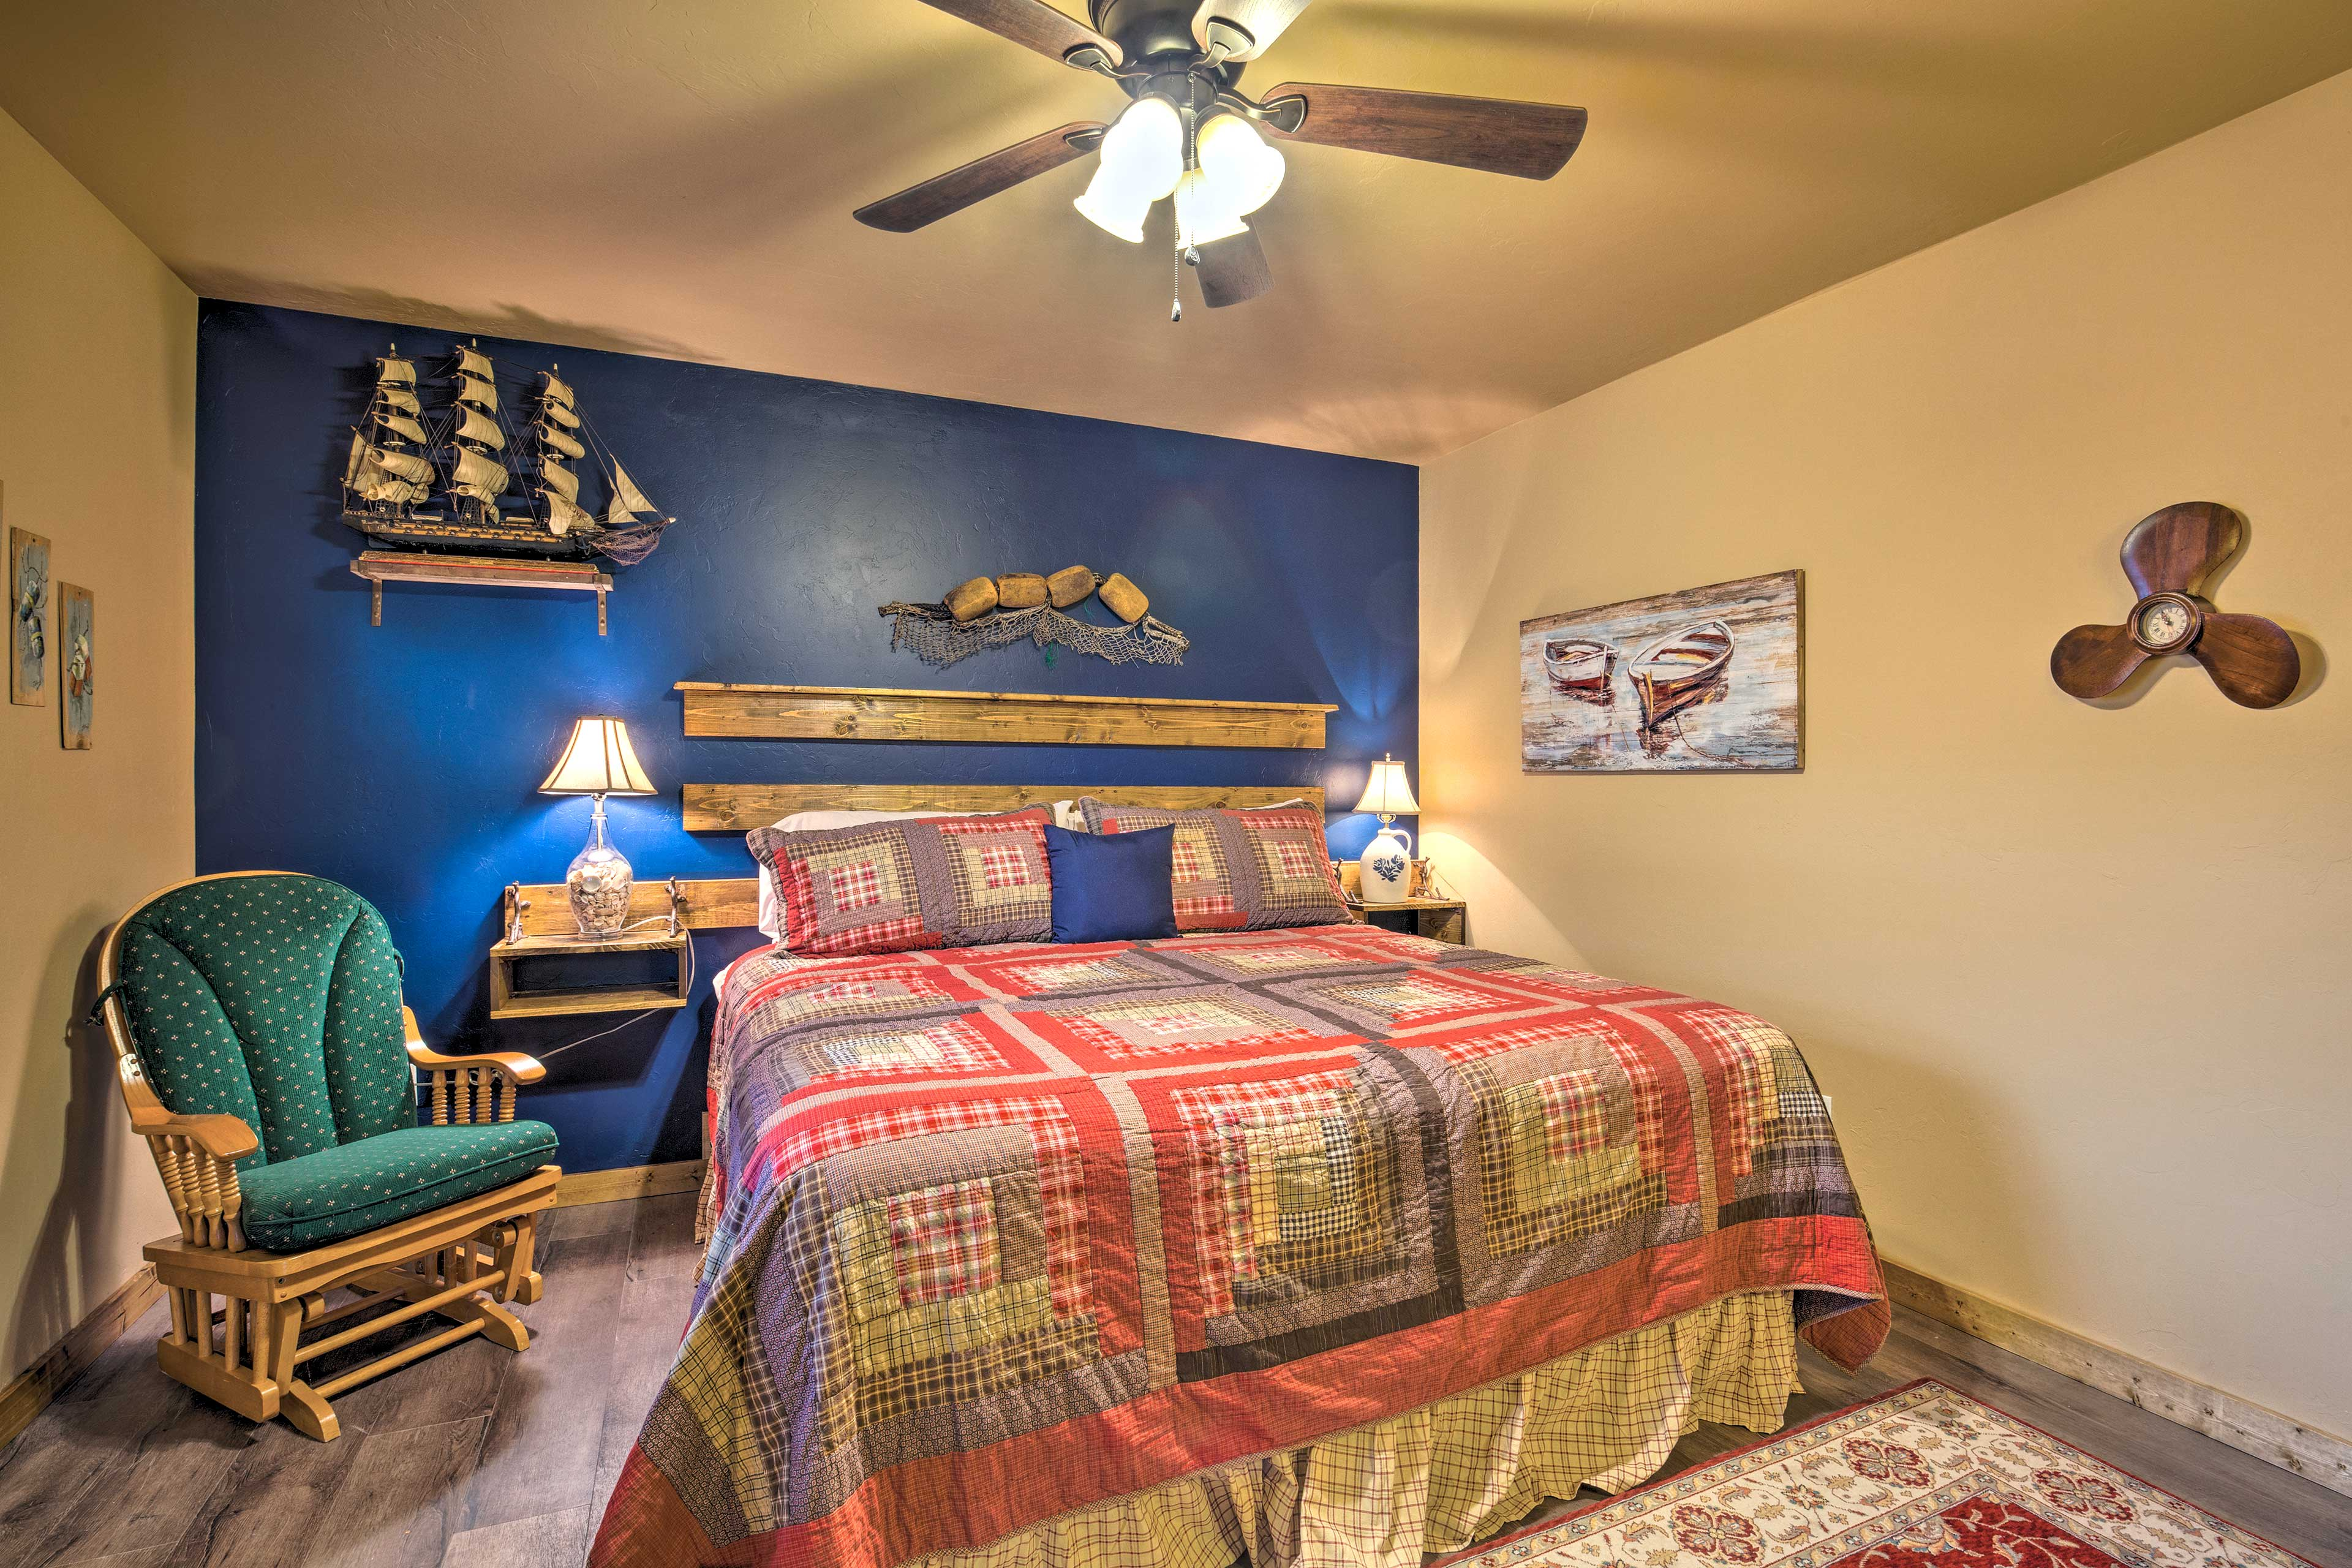 The master bedroom boasts a nautical theme and king-sized bed.